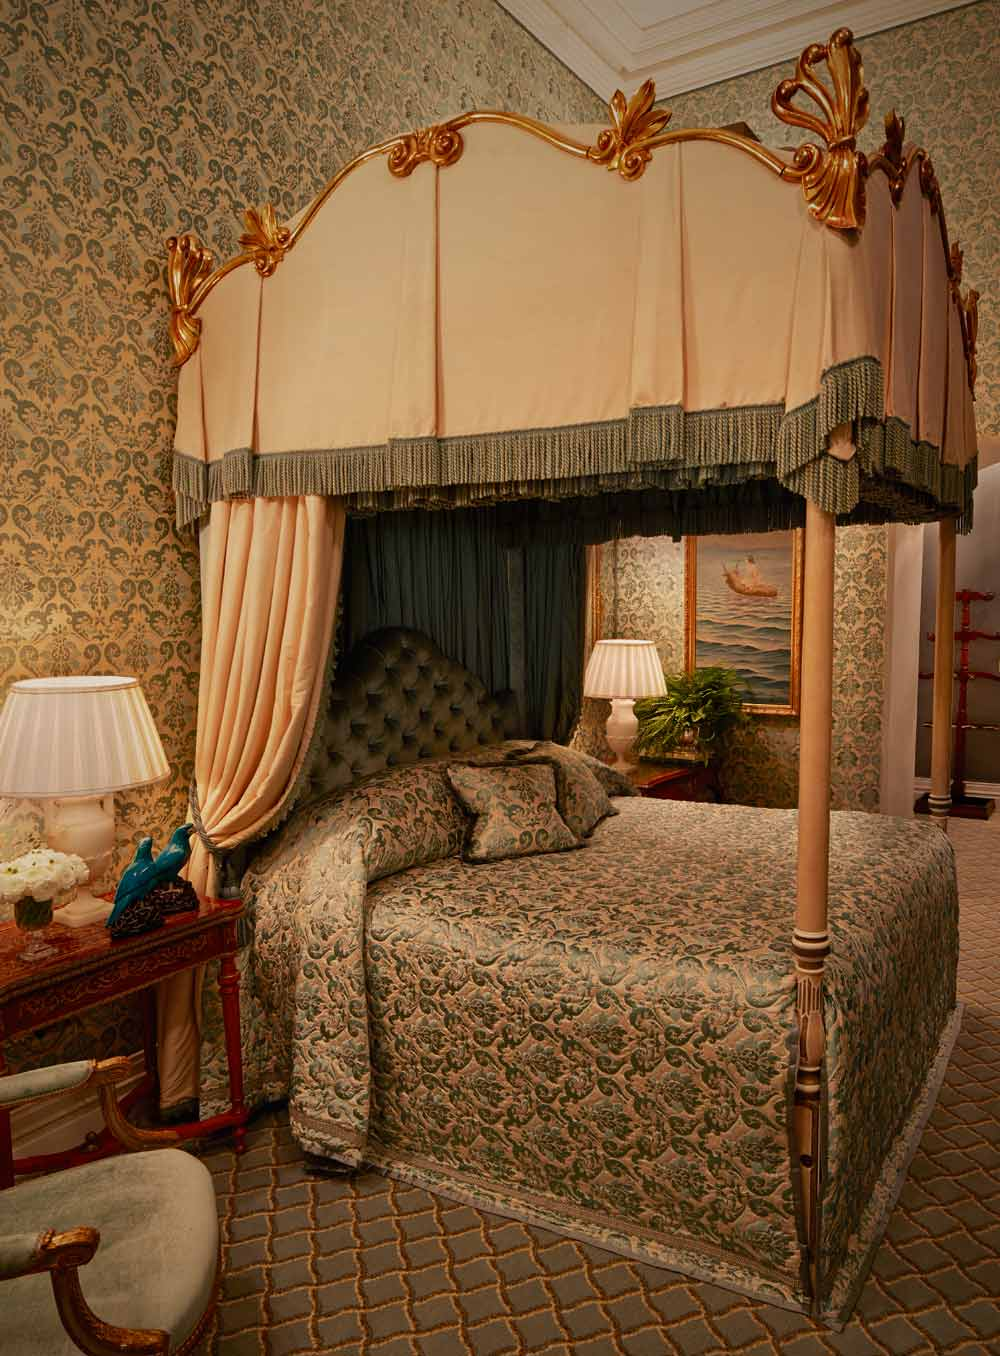 Corrib Lake View Room at Ashford Castle, County Mayo, Ireland